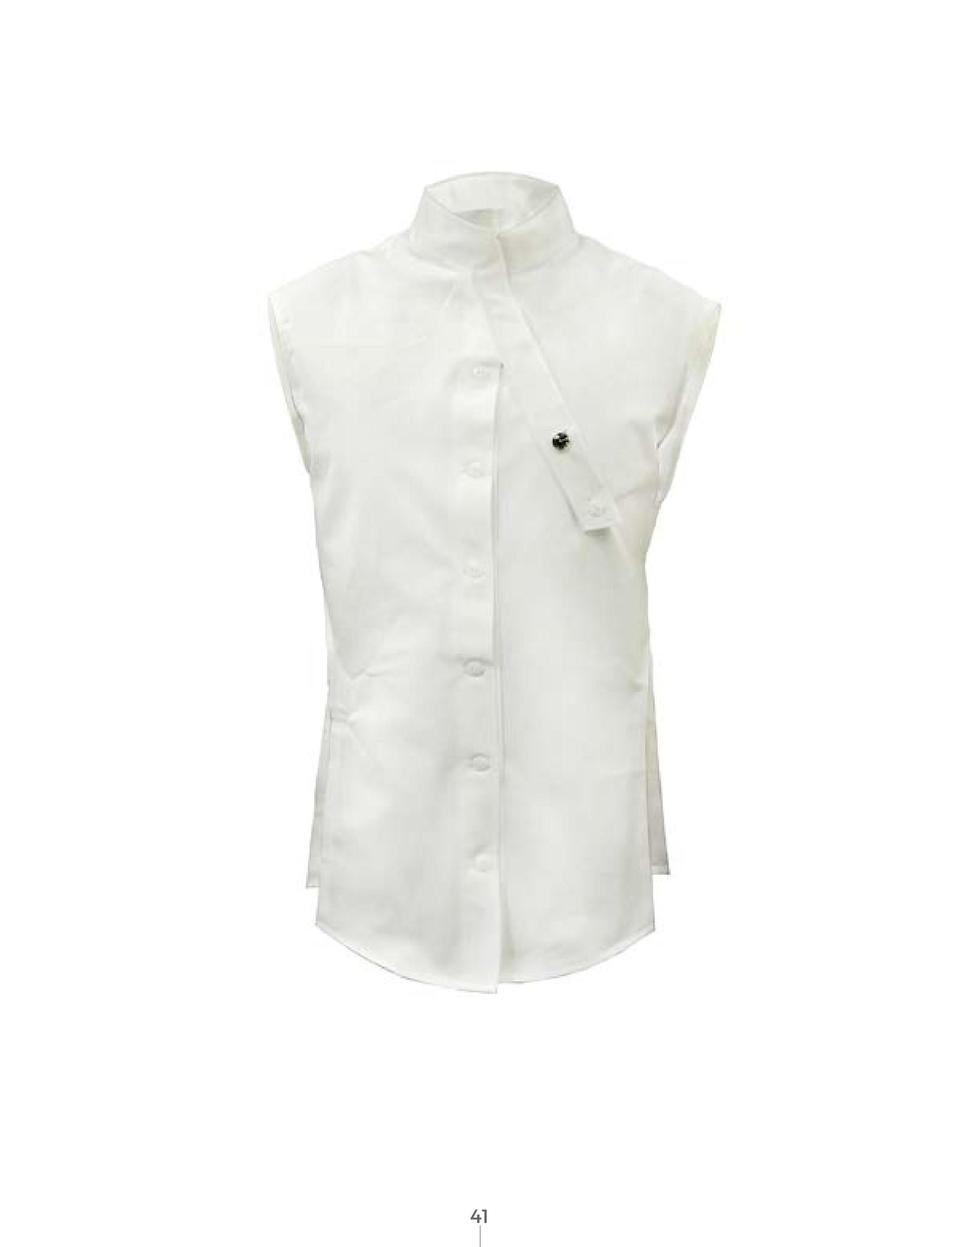 T  he original Oxford Weaved fabric in pearl white, made by Scottish fabric mills was used by Mike. The shirt was designed...